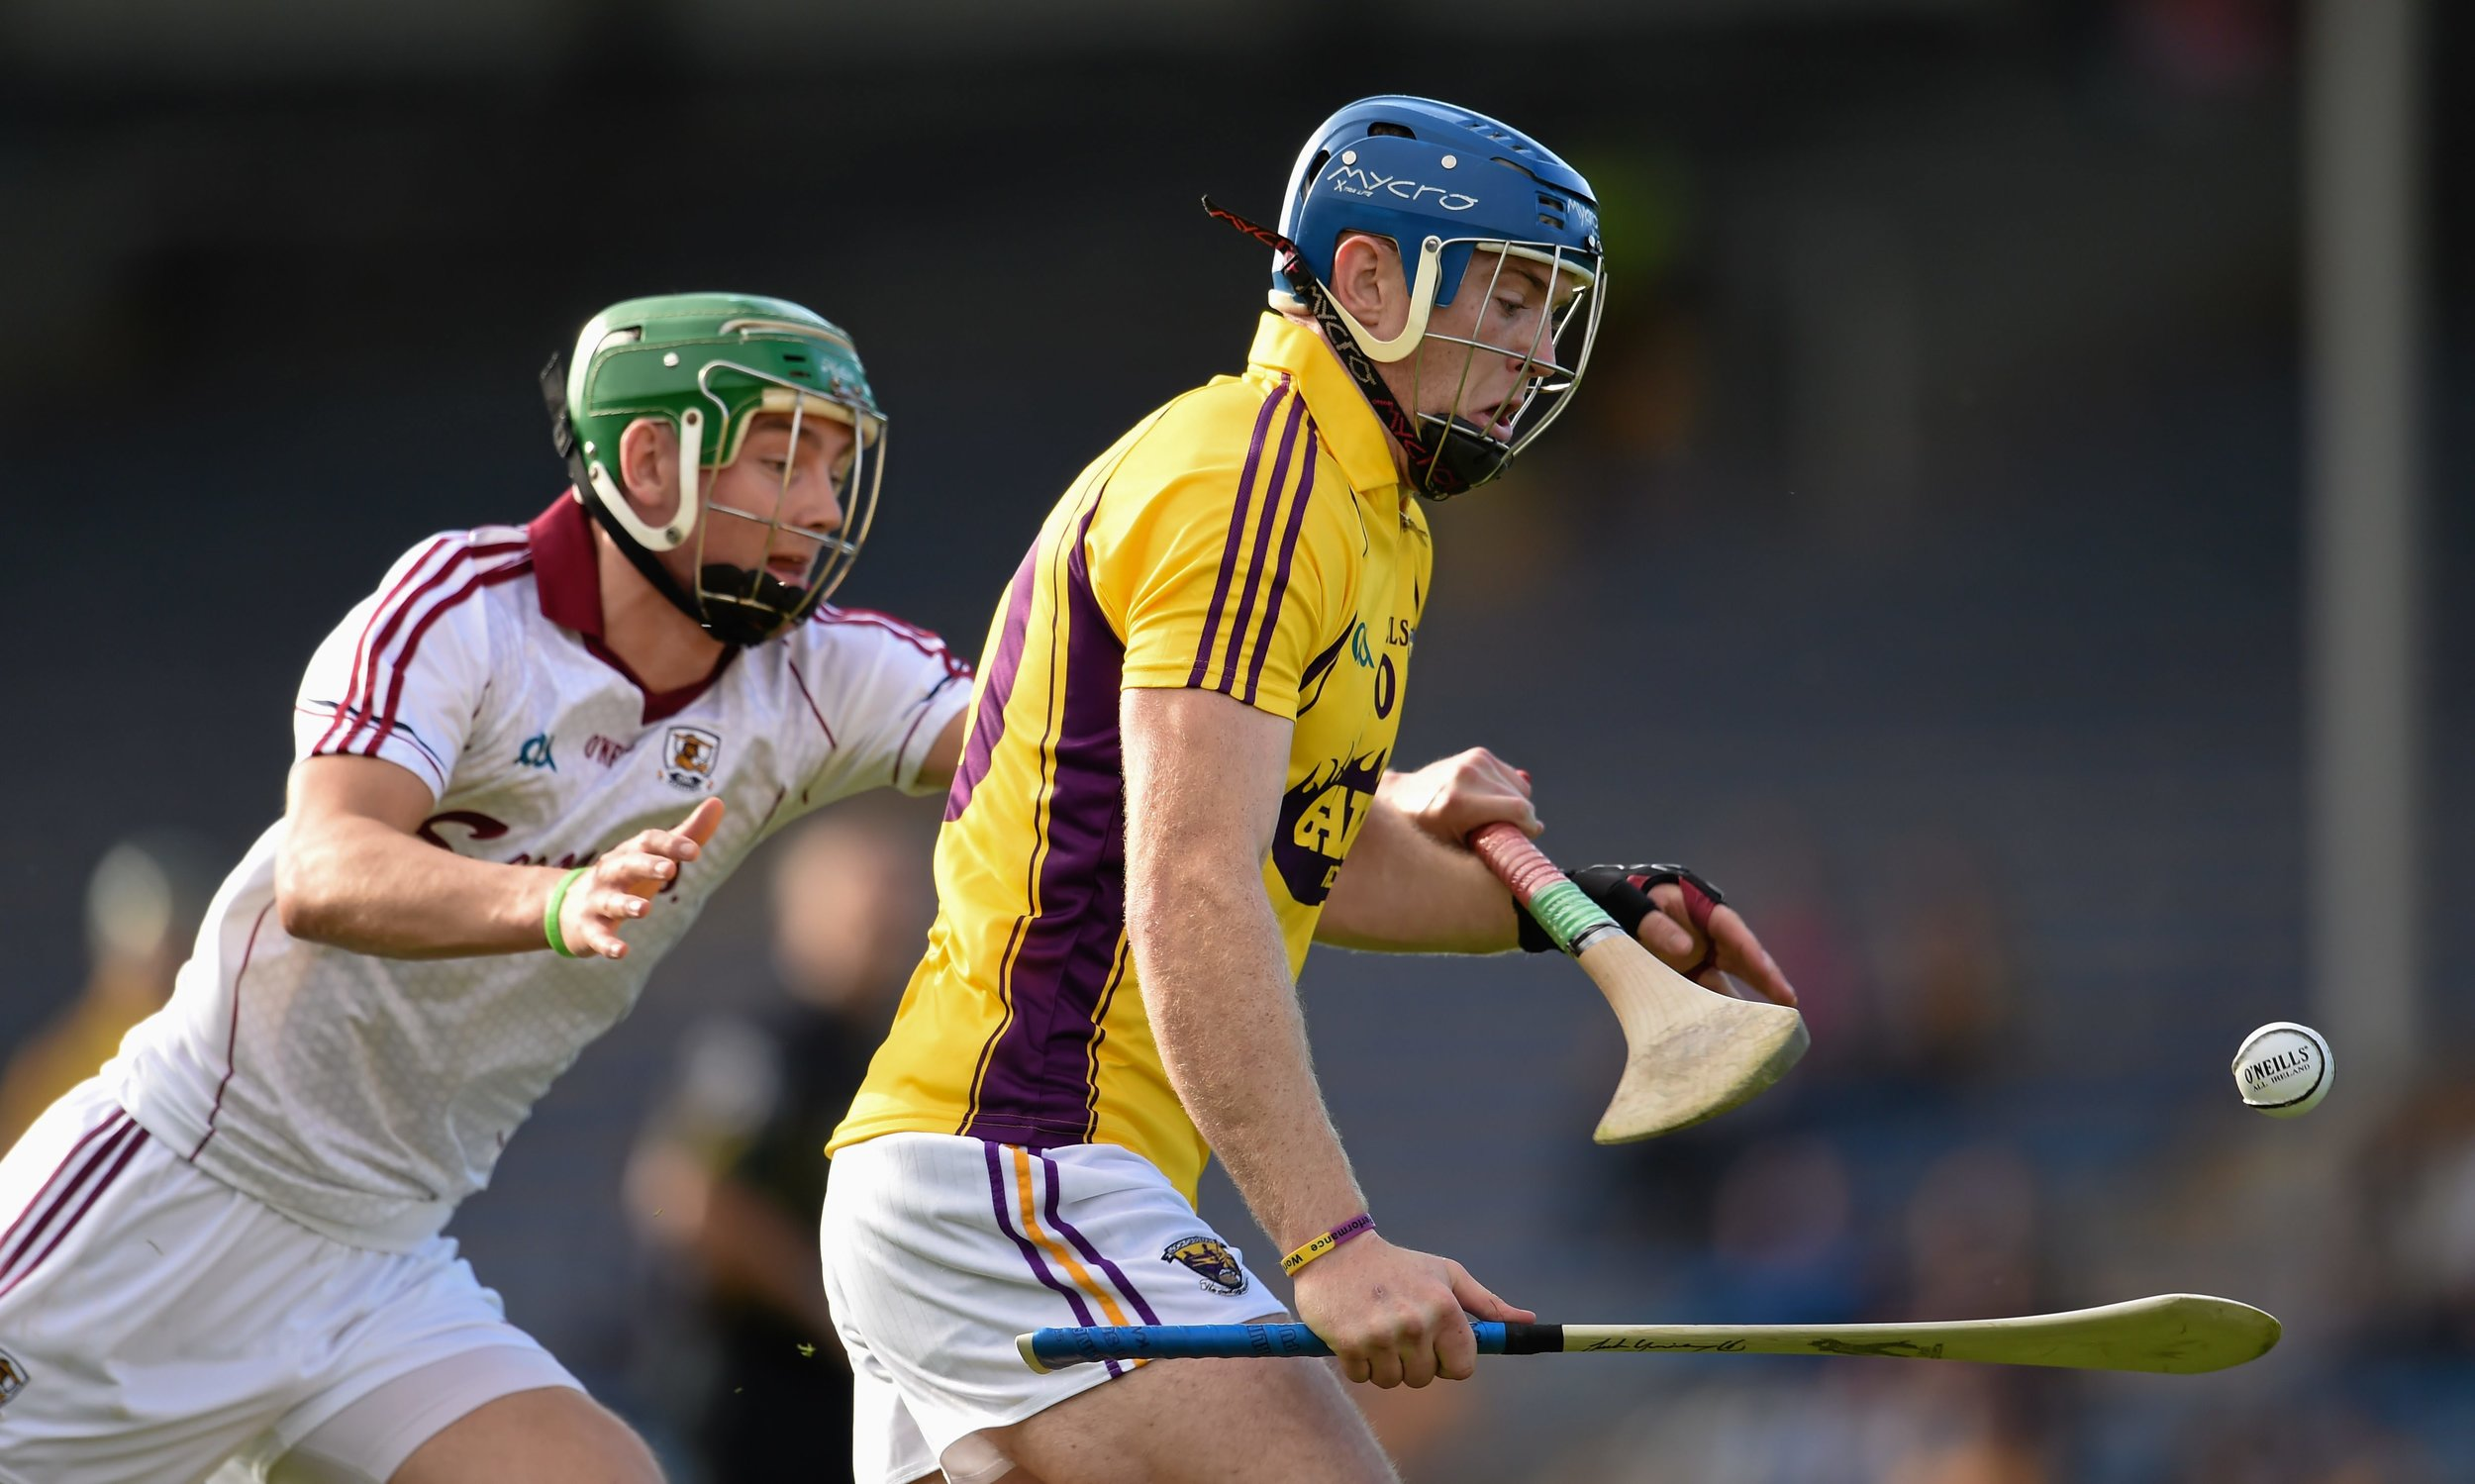 Wexford vs Galway Hurling.jpg